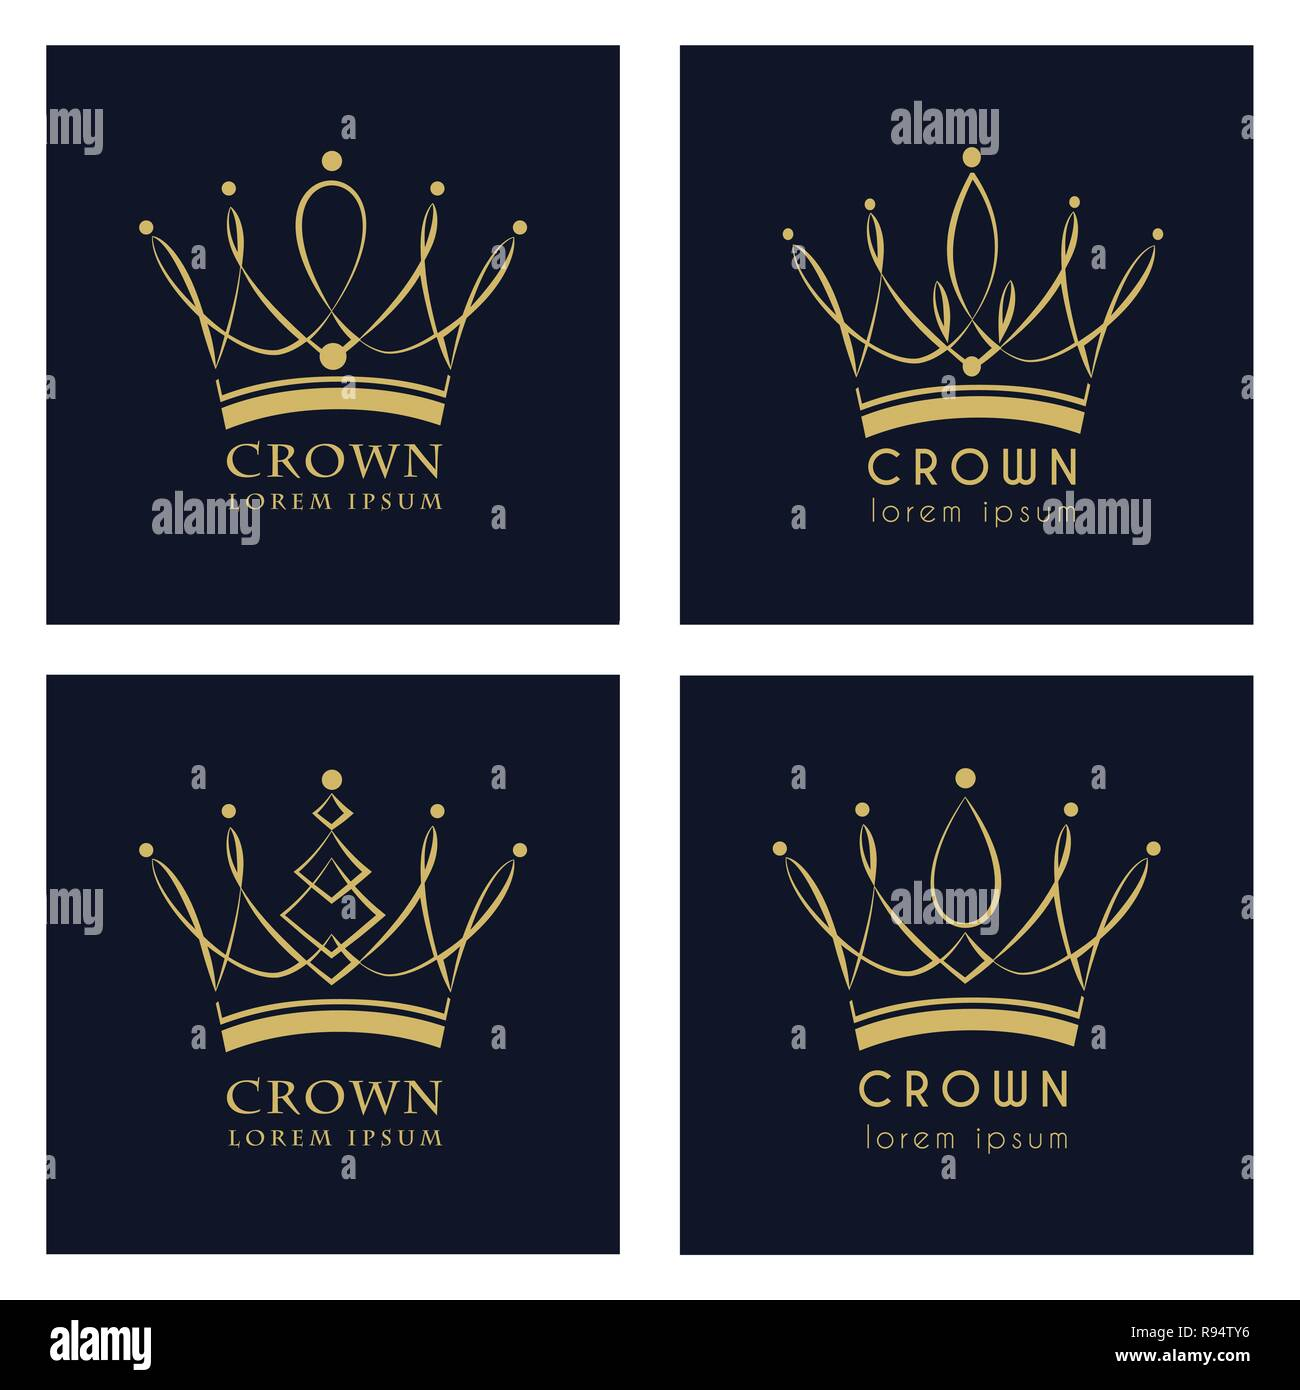 Vintage Crown Logo Royal King Queen abstract Logo design vector template. Vector, illustration, eps 10. - Stock Image